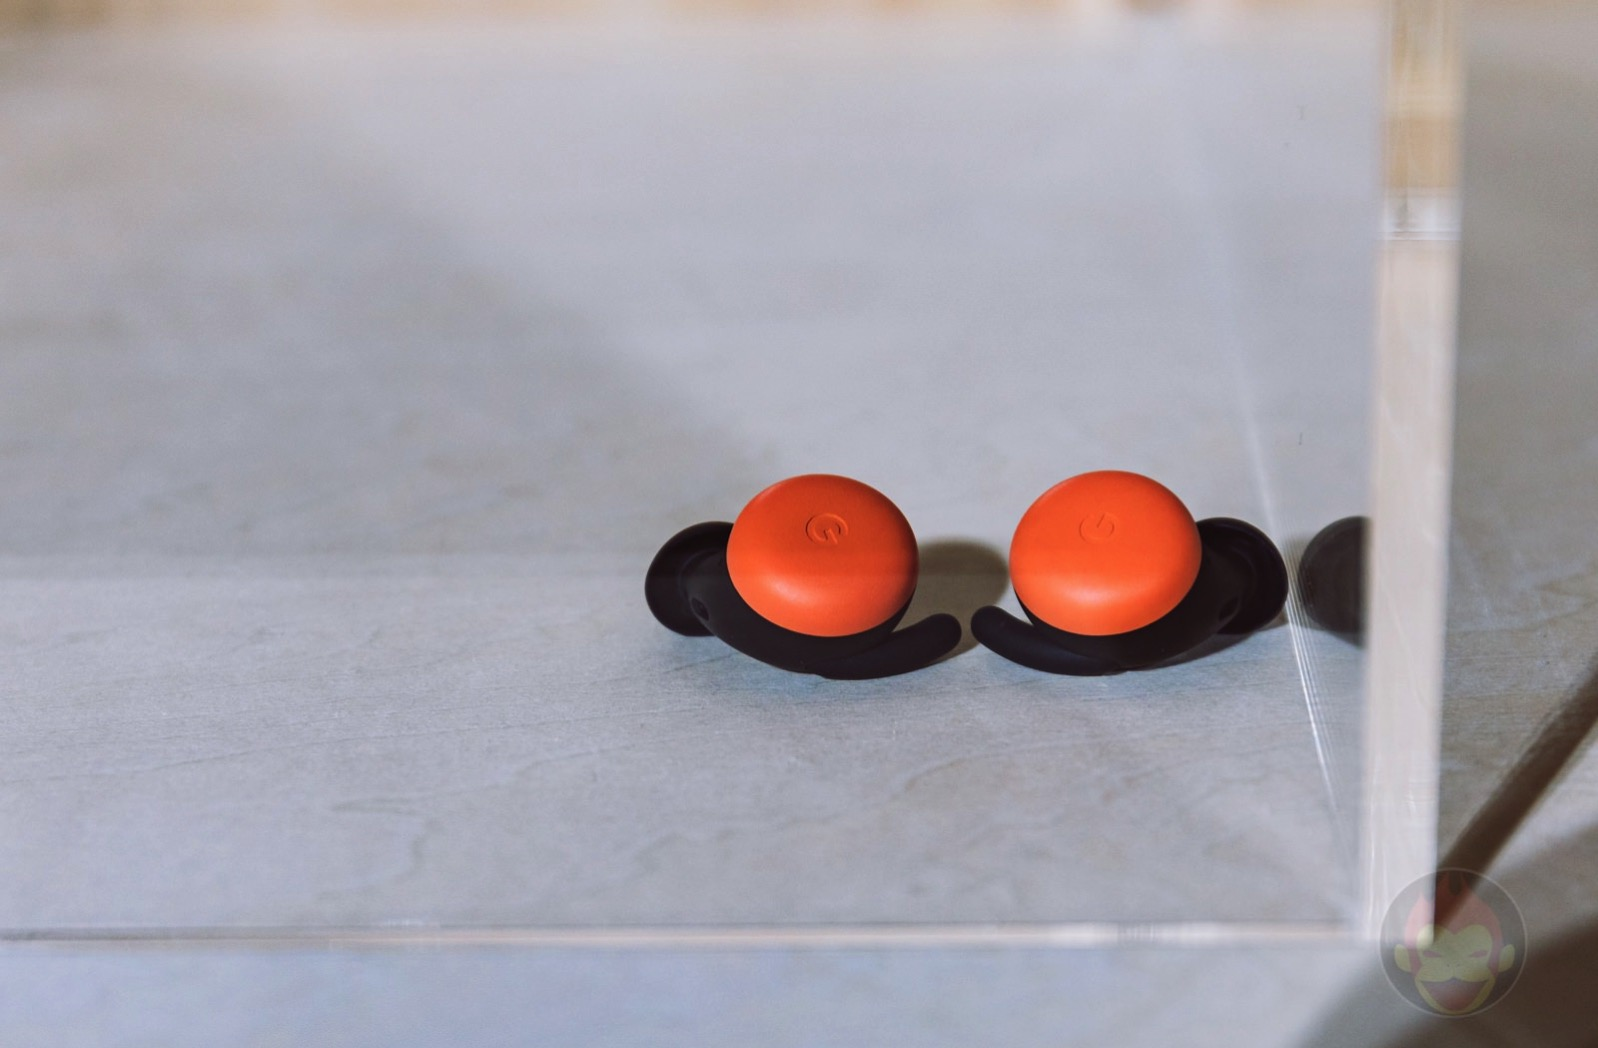 Google-PixelBuds-Photo-Review-03.jpg